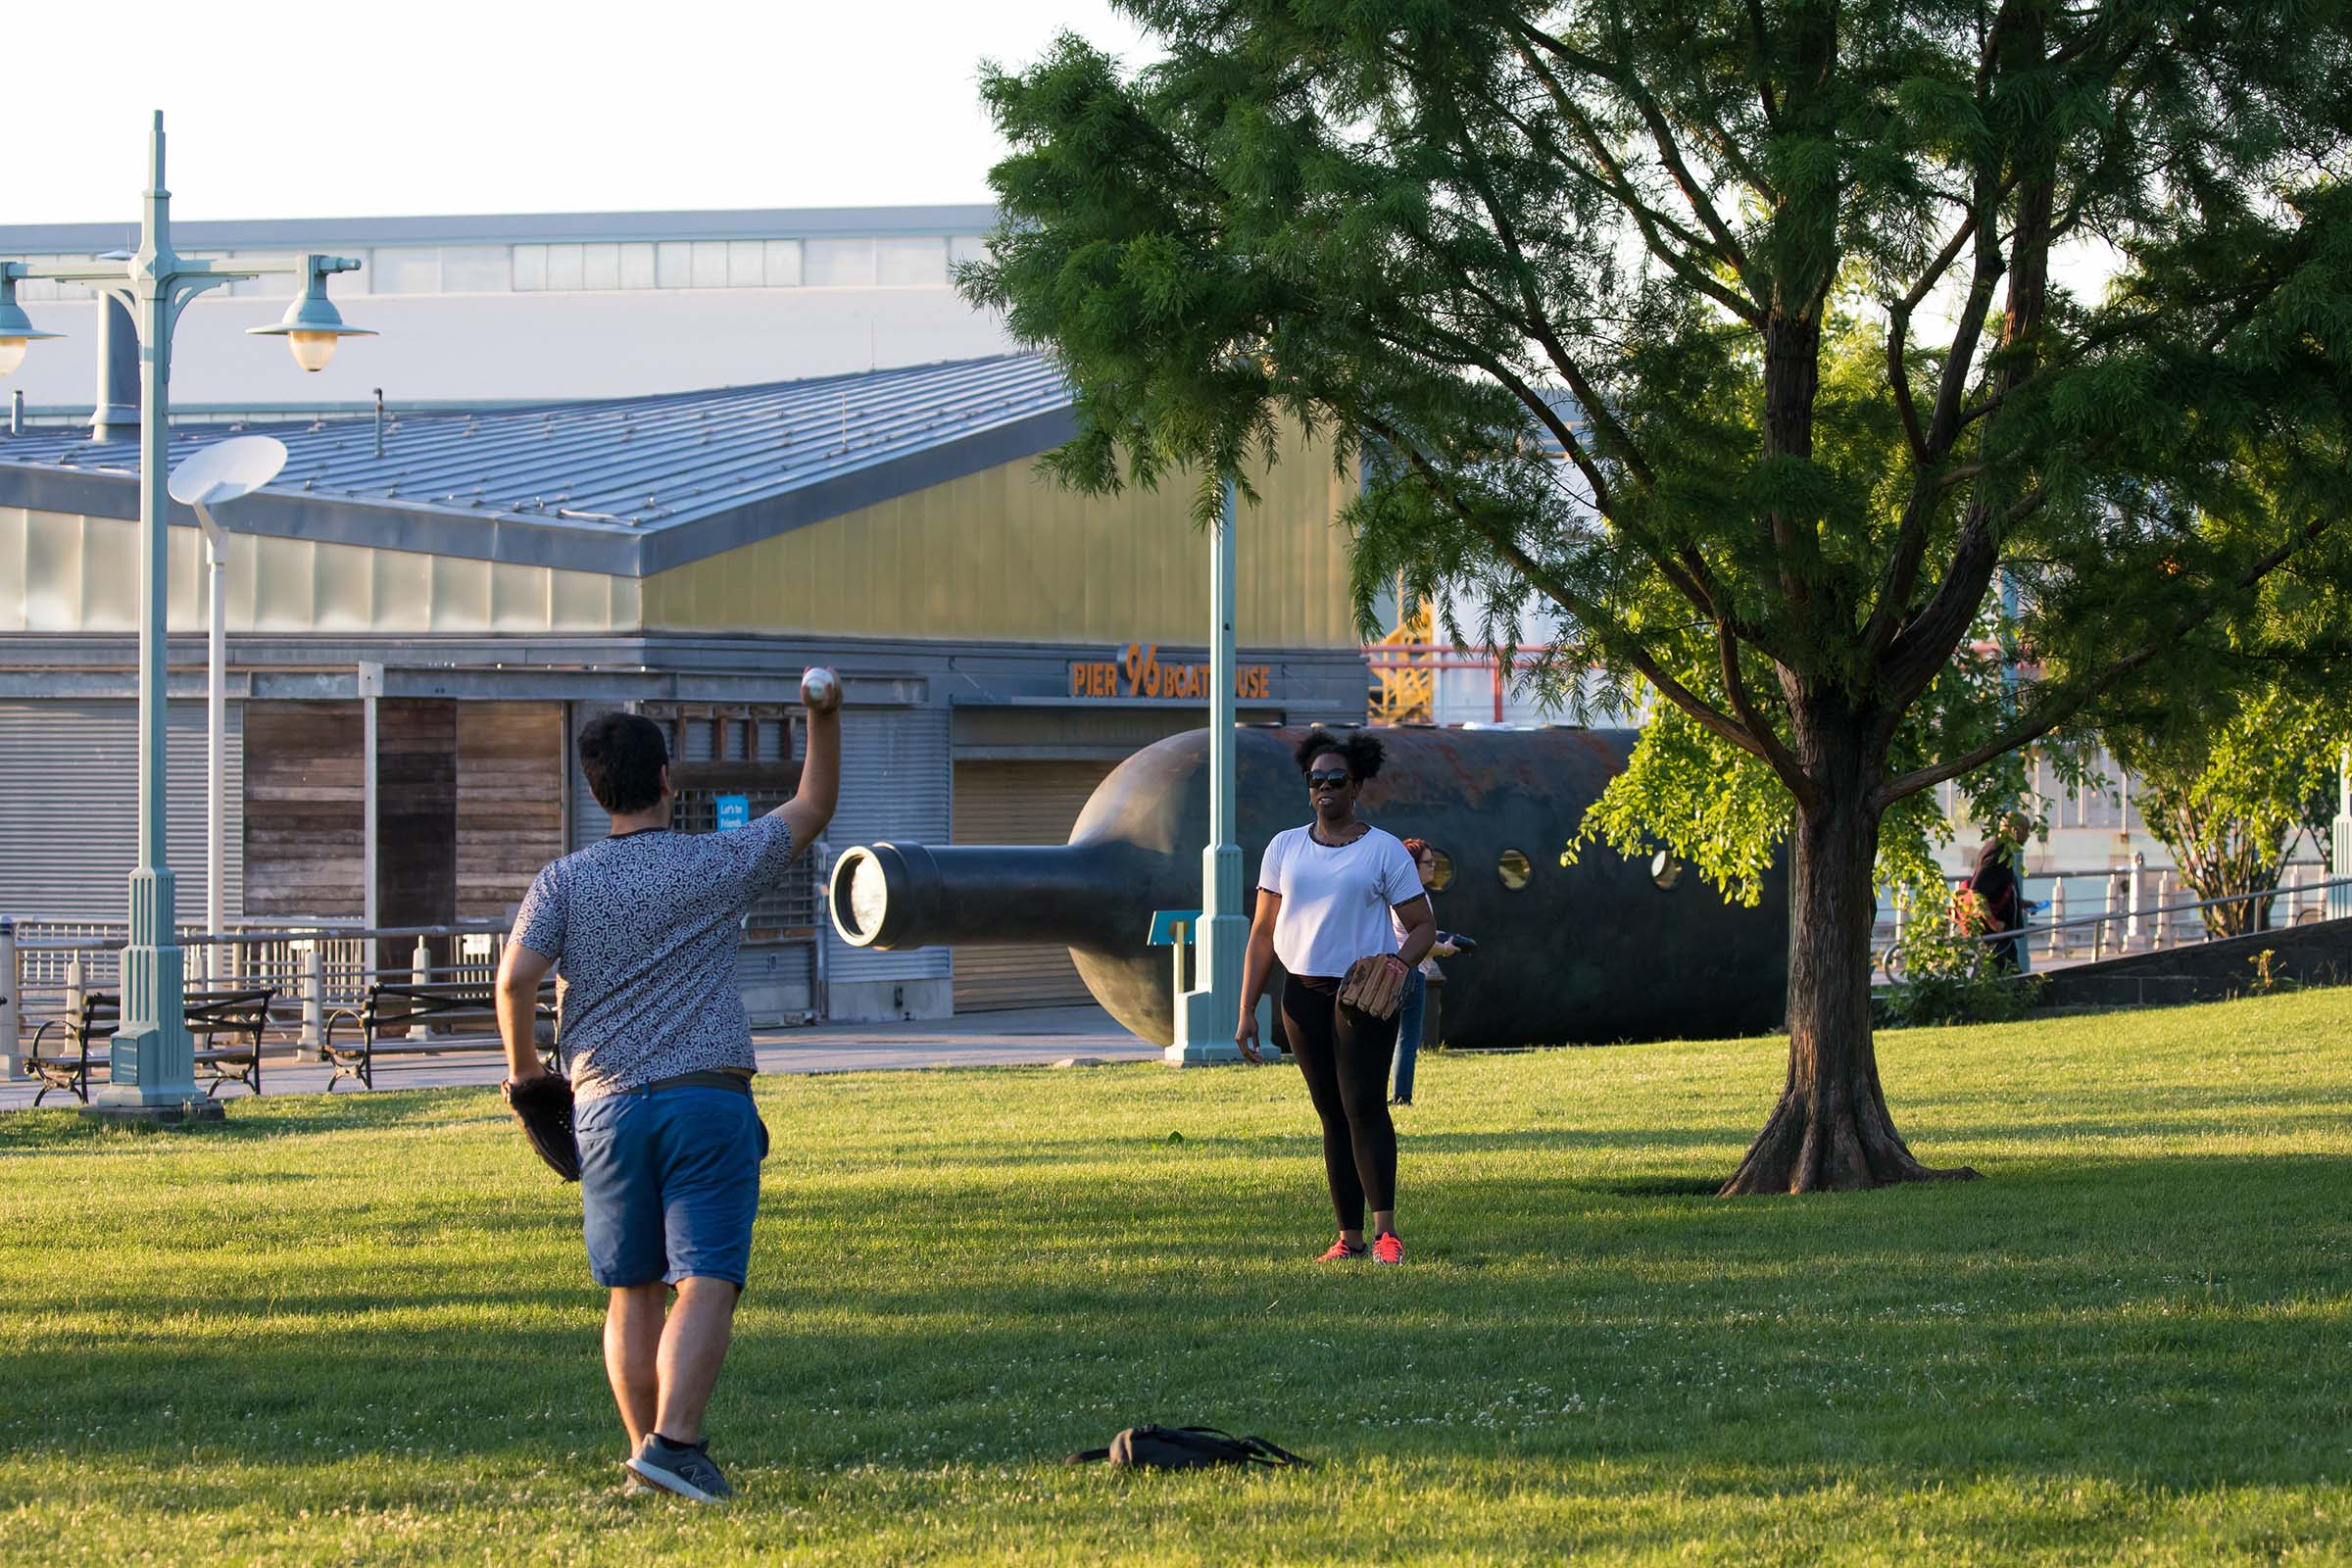 Park visitors throw a baseball on the field near Private Passage